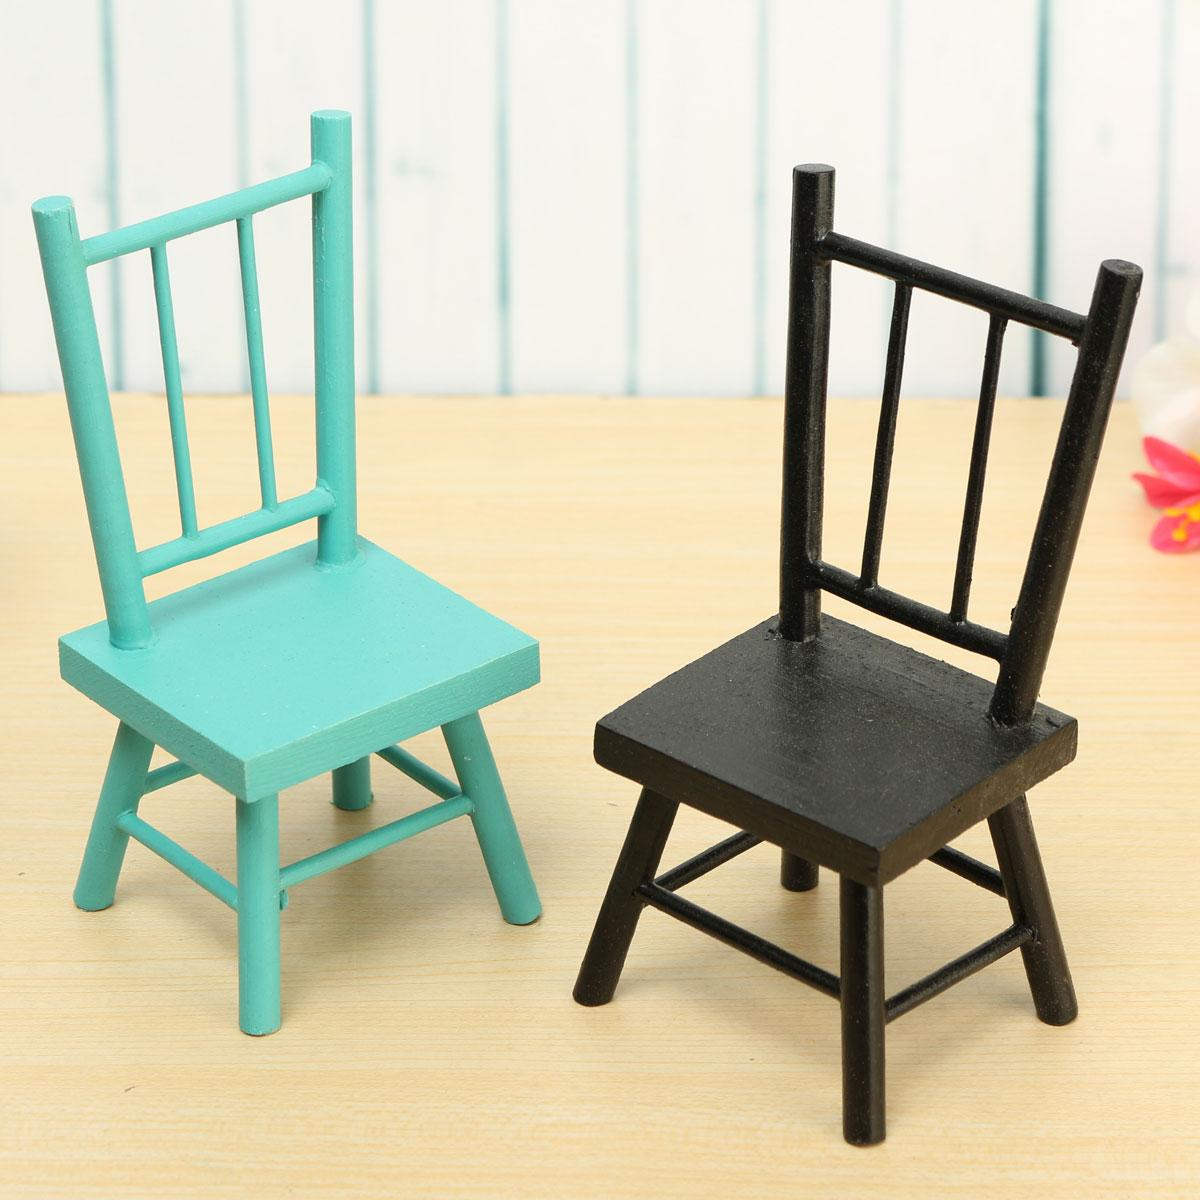 wooden craft mini small chair bench stool ornaments